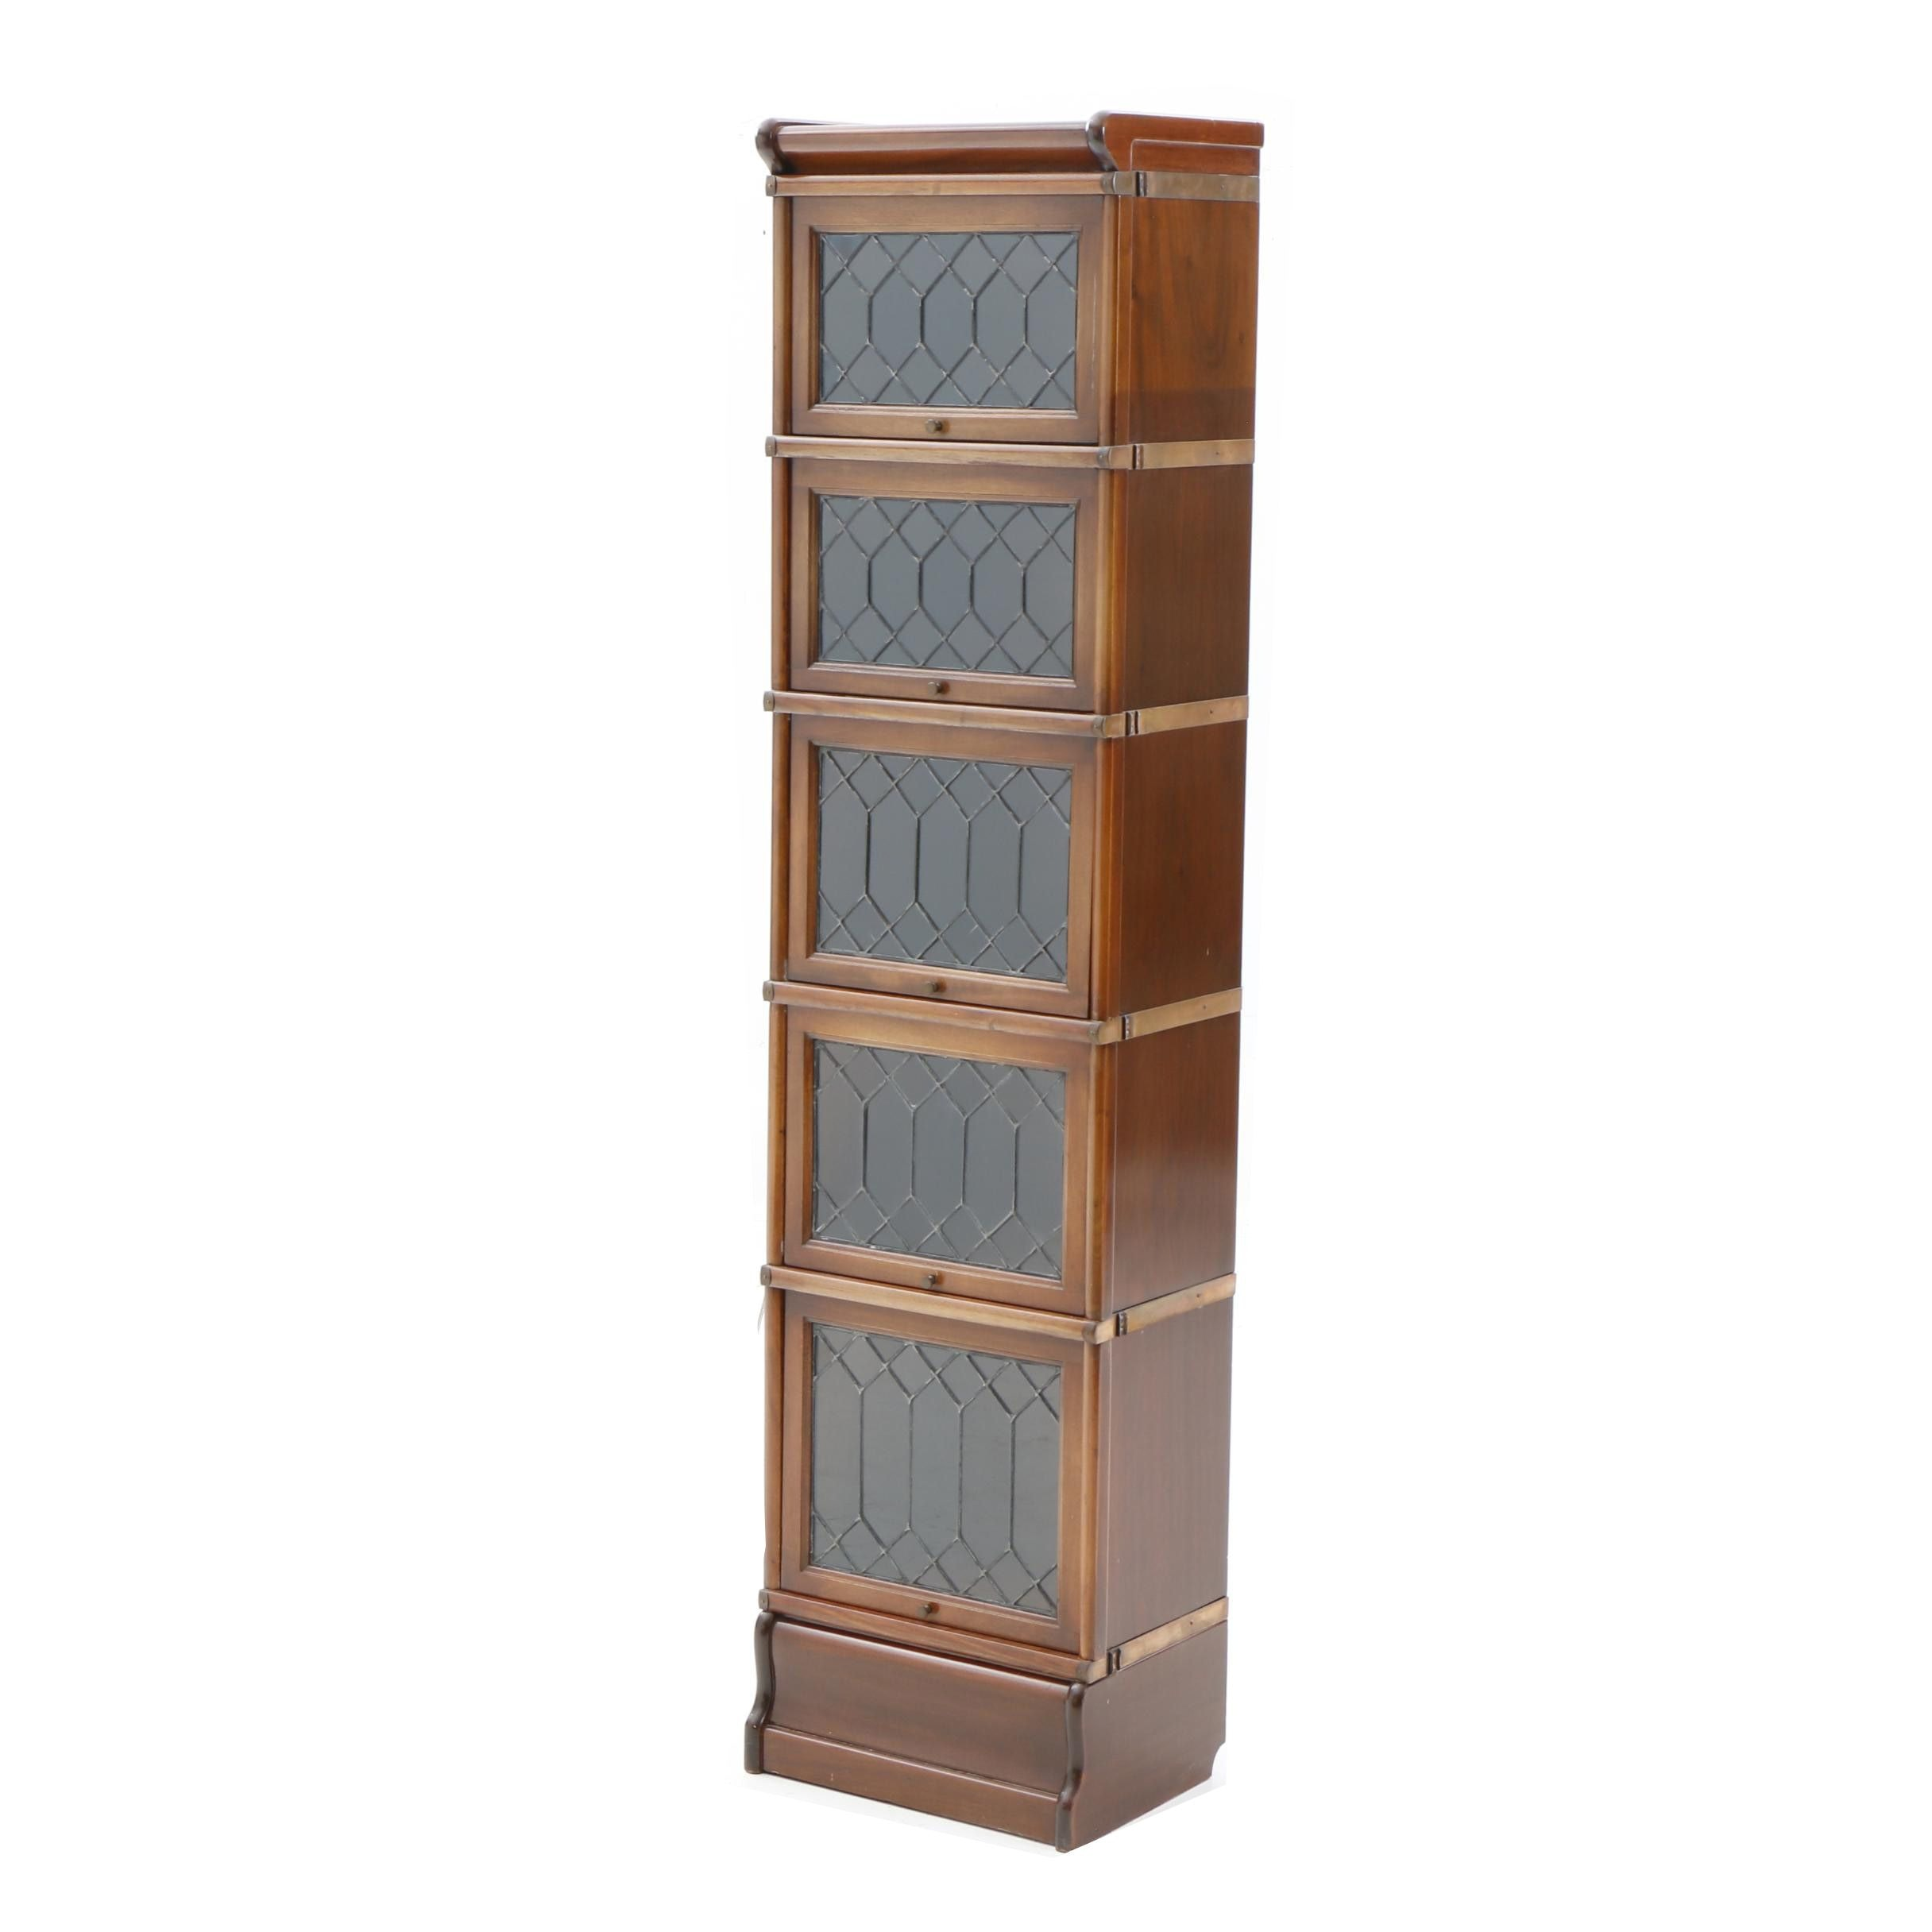 Narrow Mahogany Barrister Bookcase with Leaded Glass